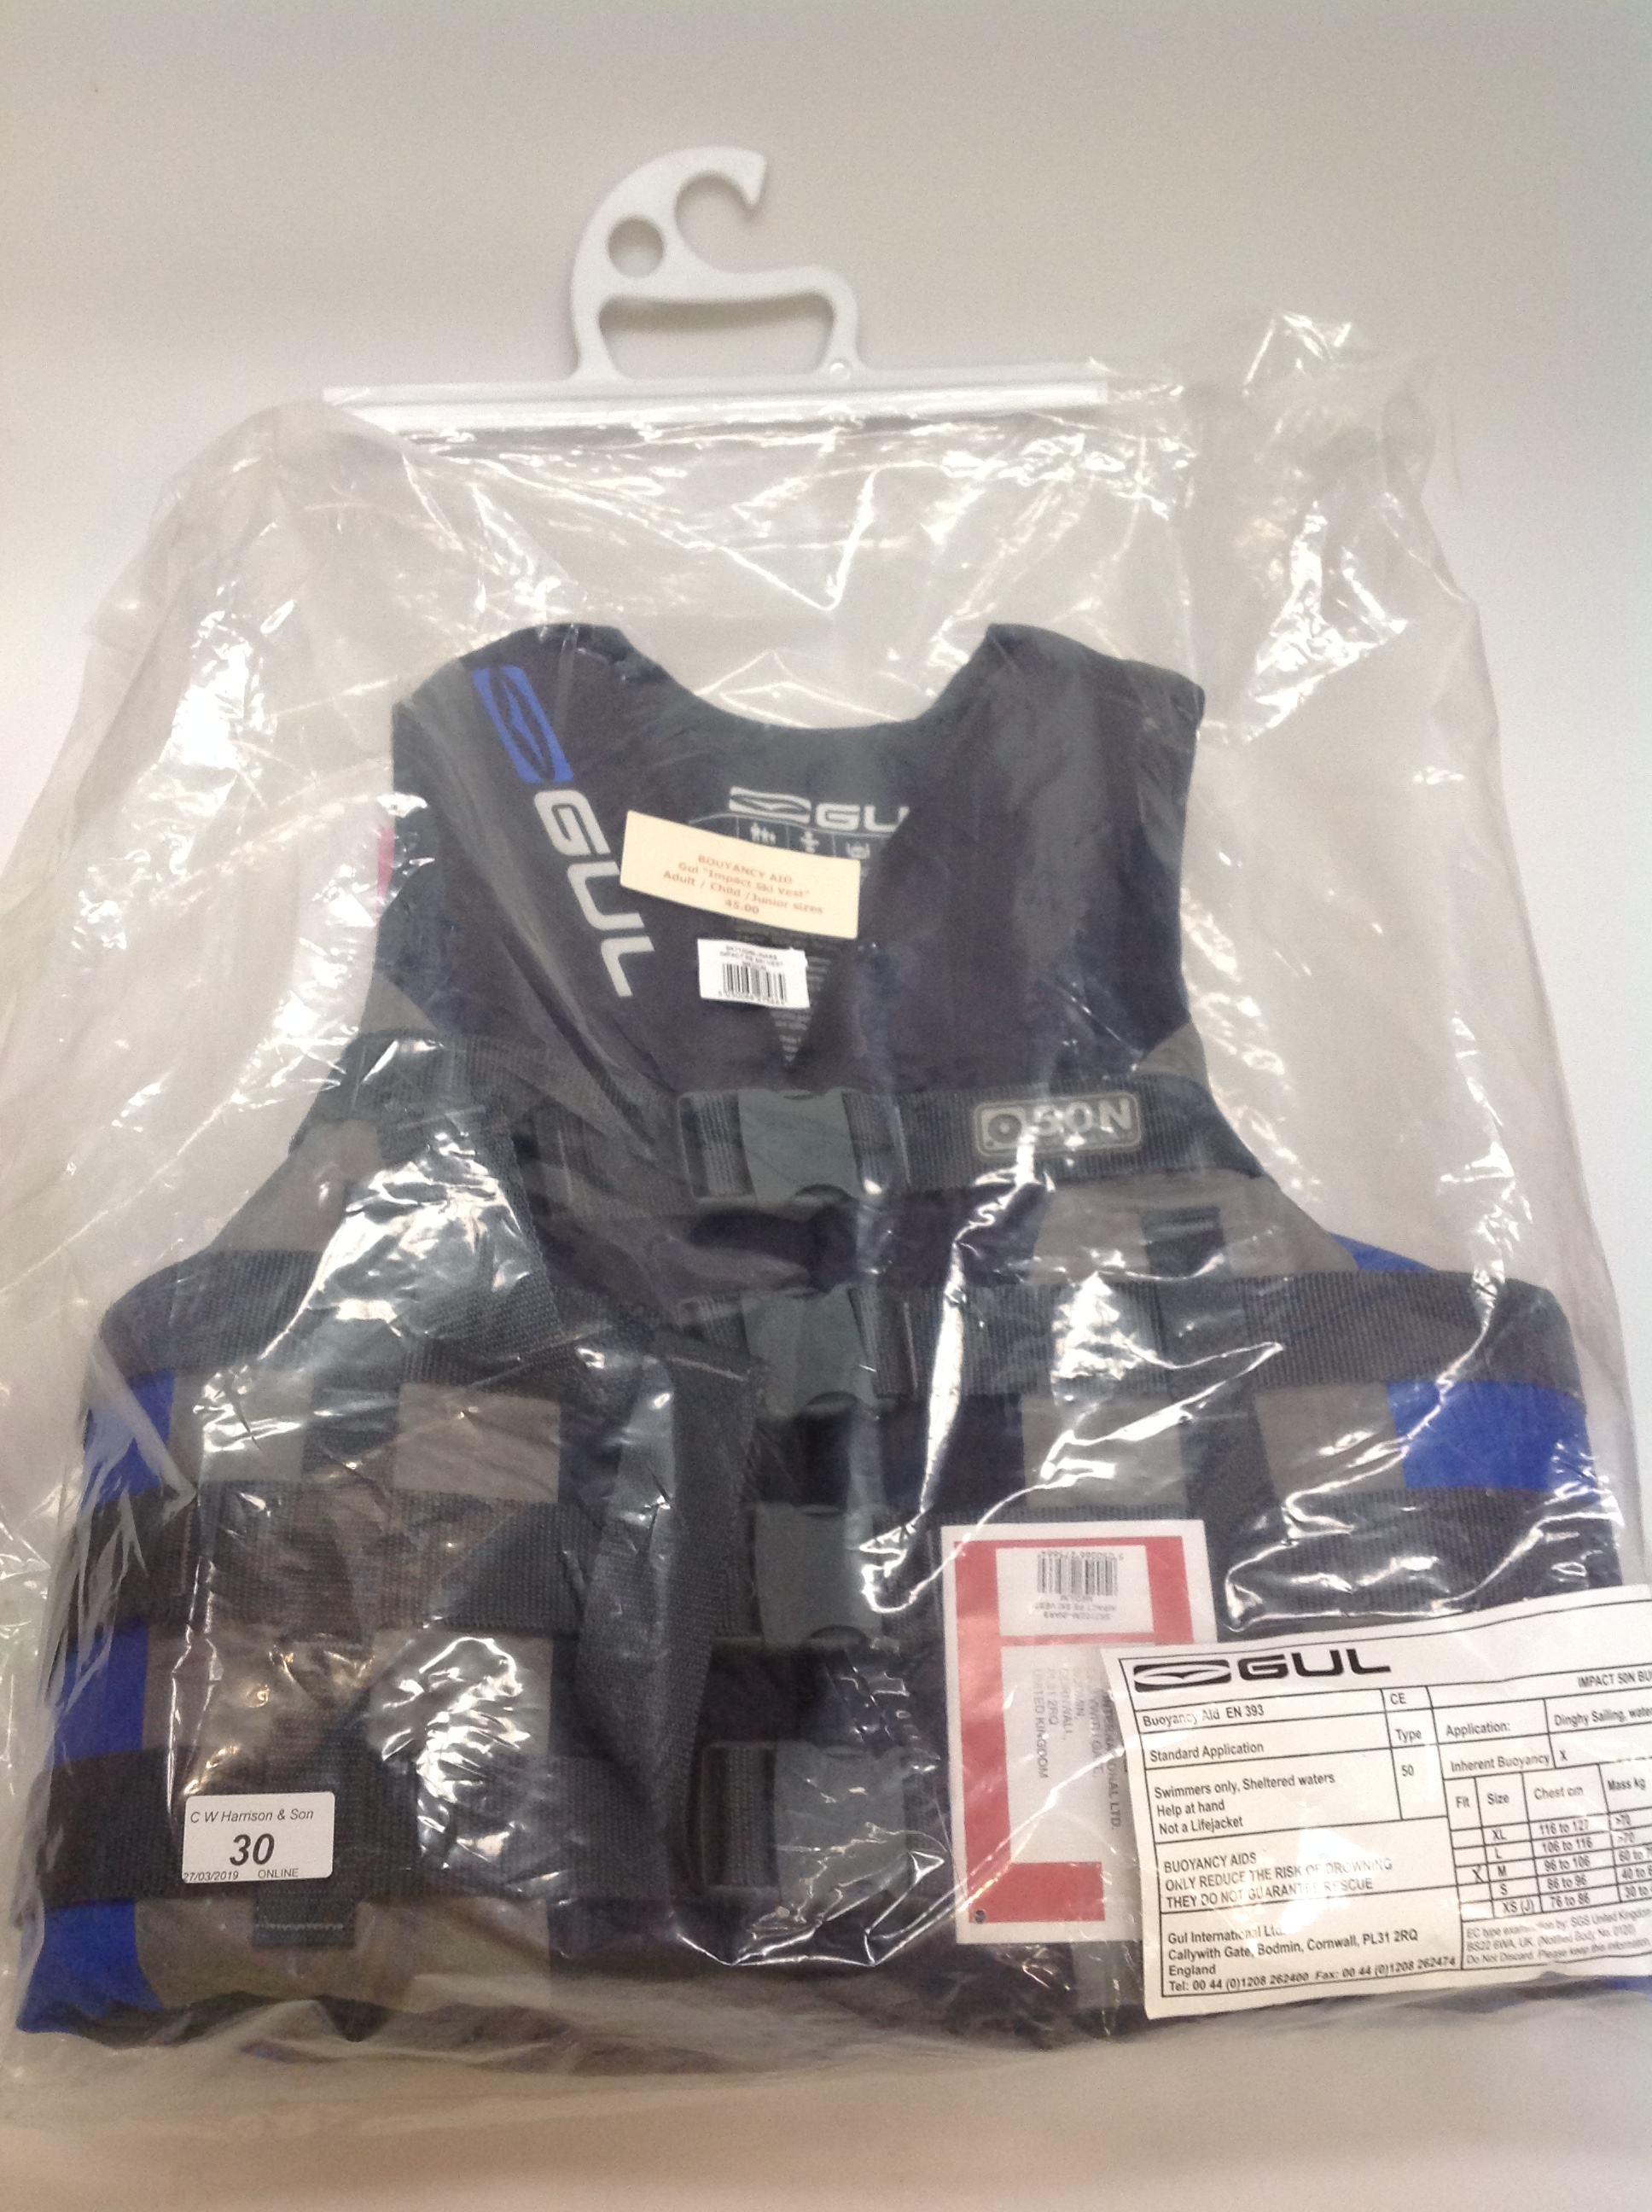 Lot 30 - Gul Impact ski vest buoyancy aid in grey and blue - size M RRP £45